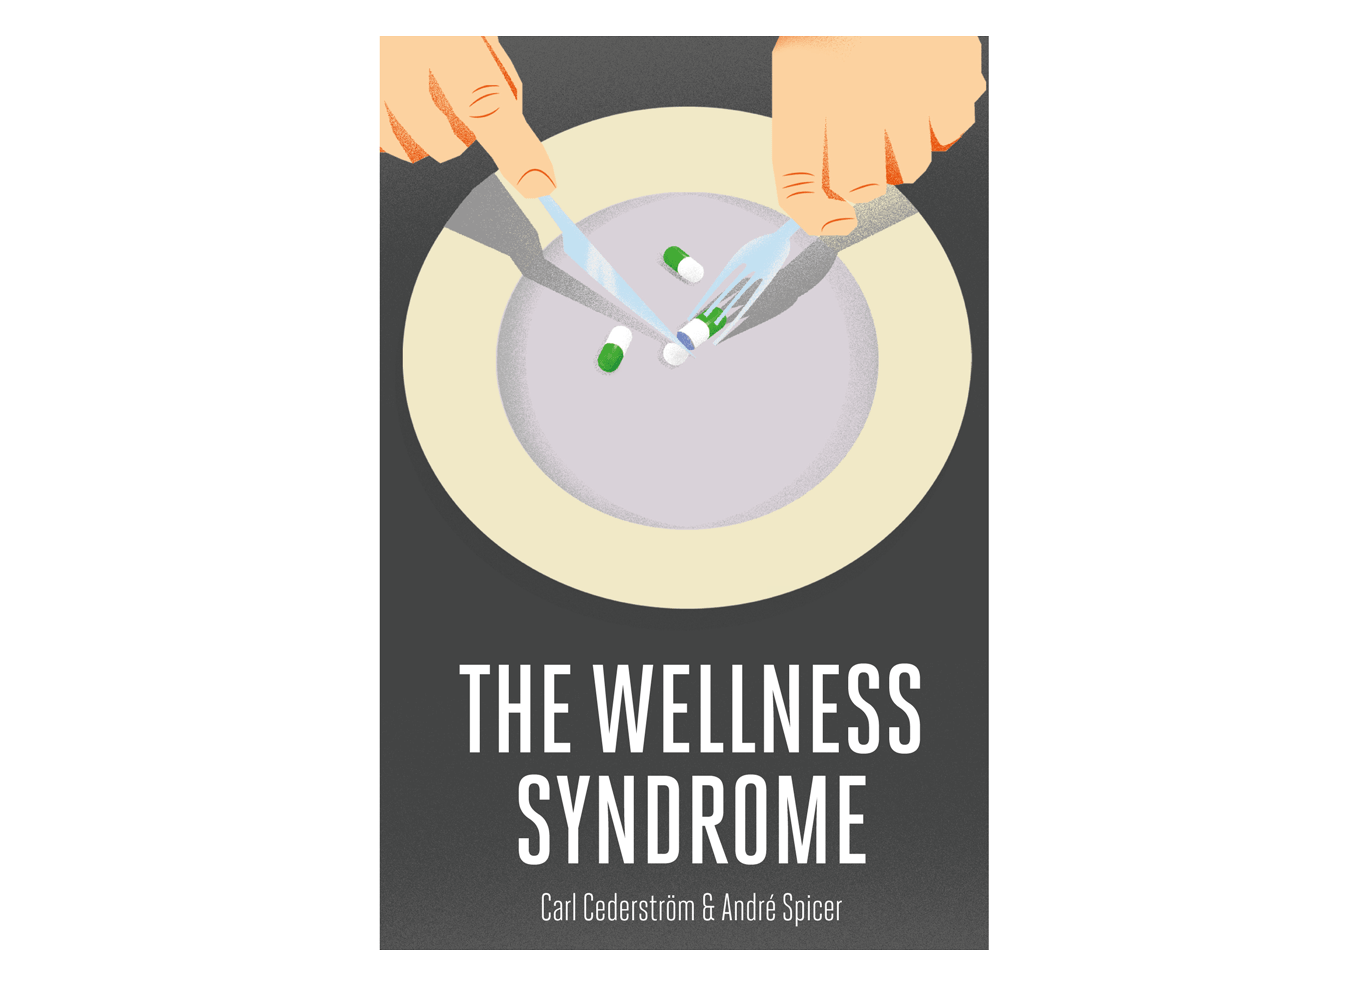 The Wellness Syndrome by Carl Cederström & André Spicer